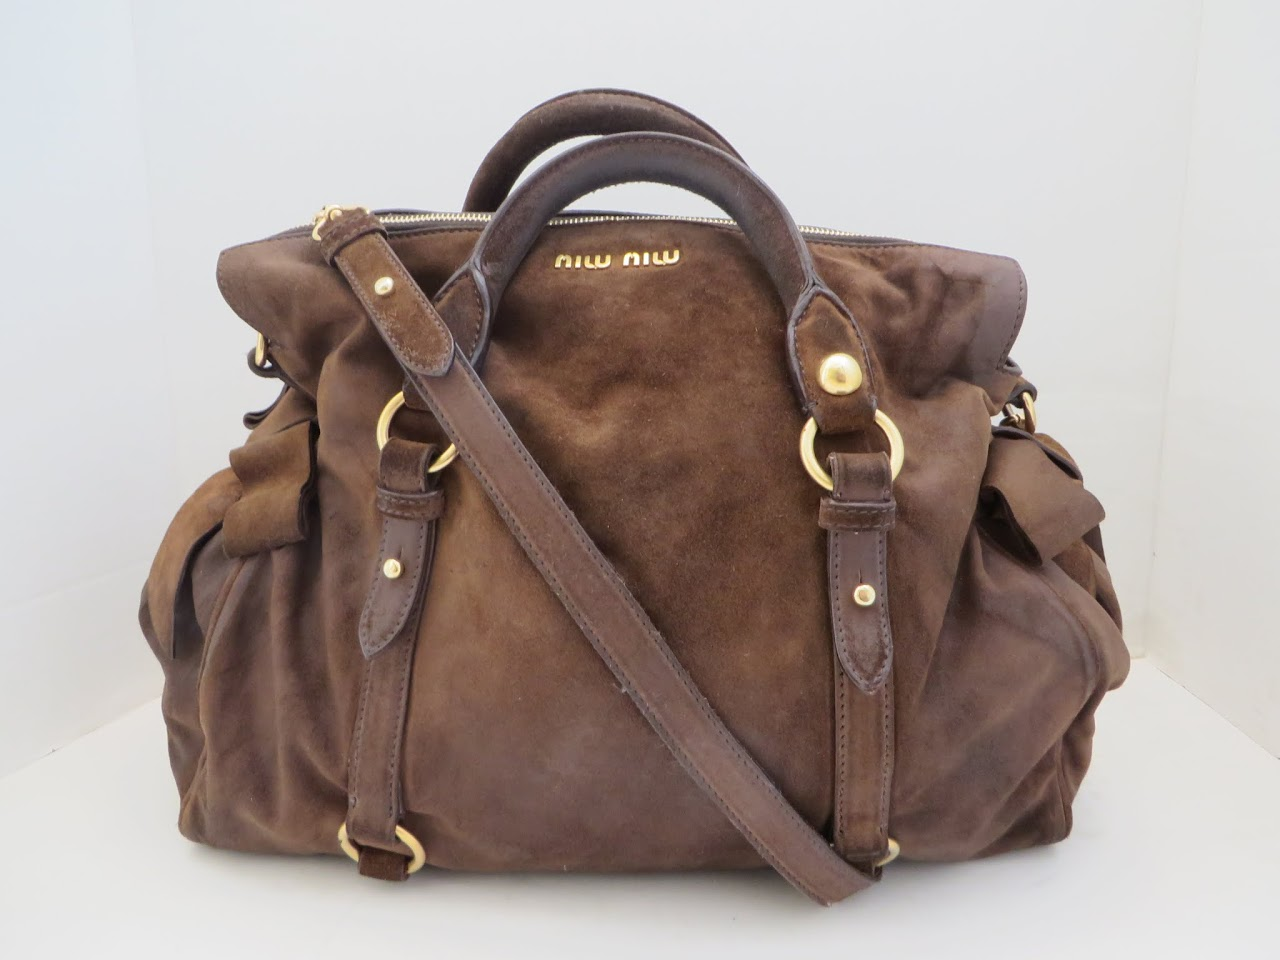 Miu Miu Brown Suede Bag